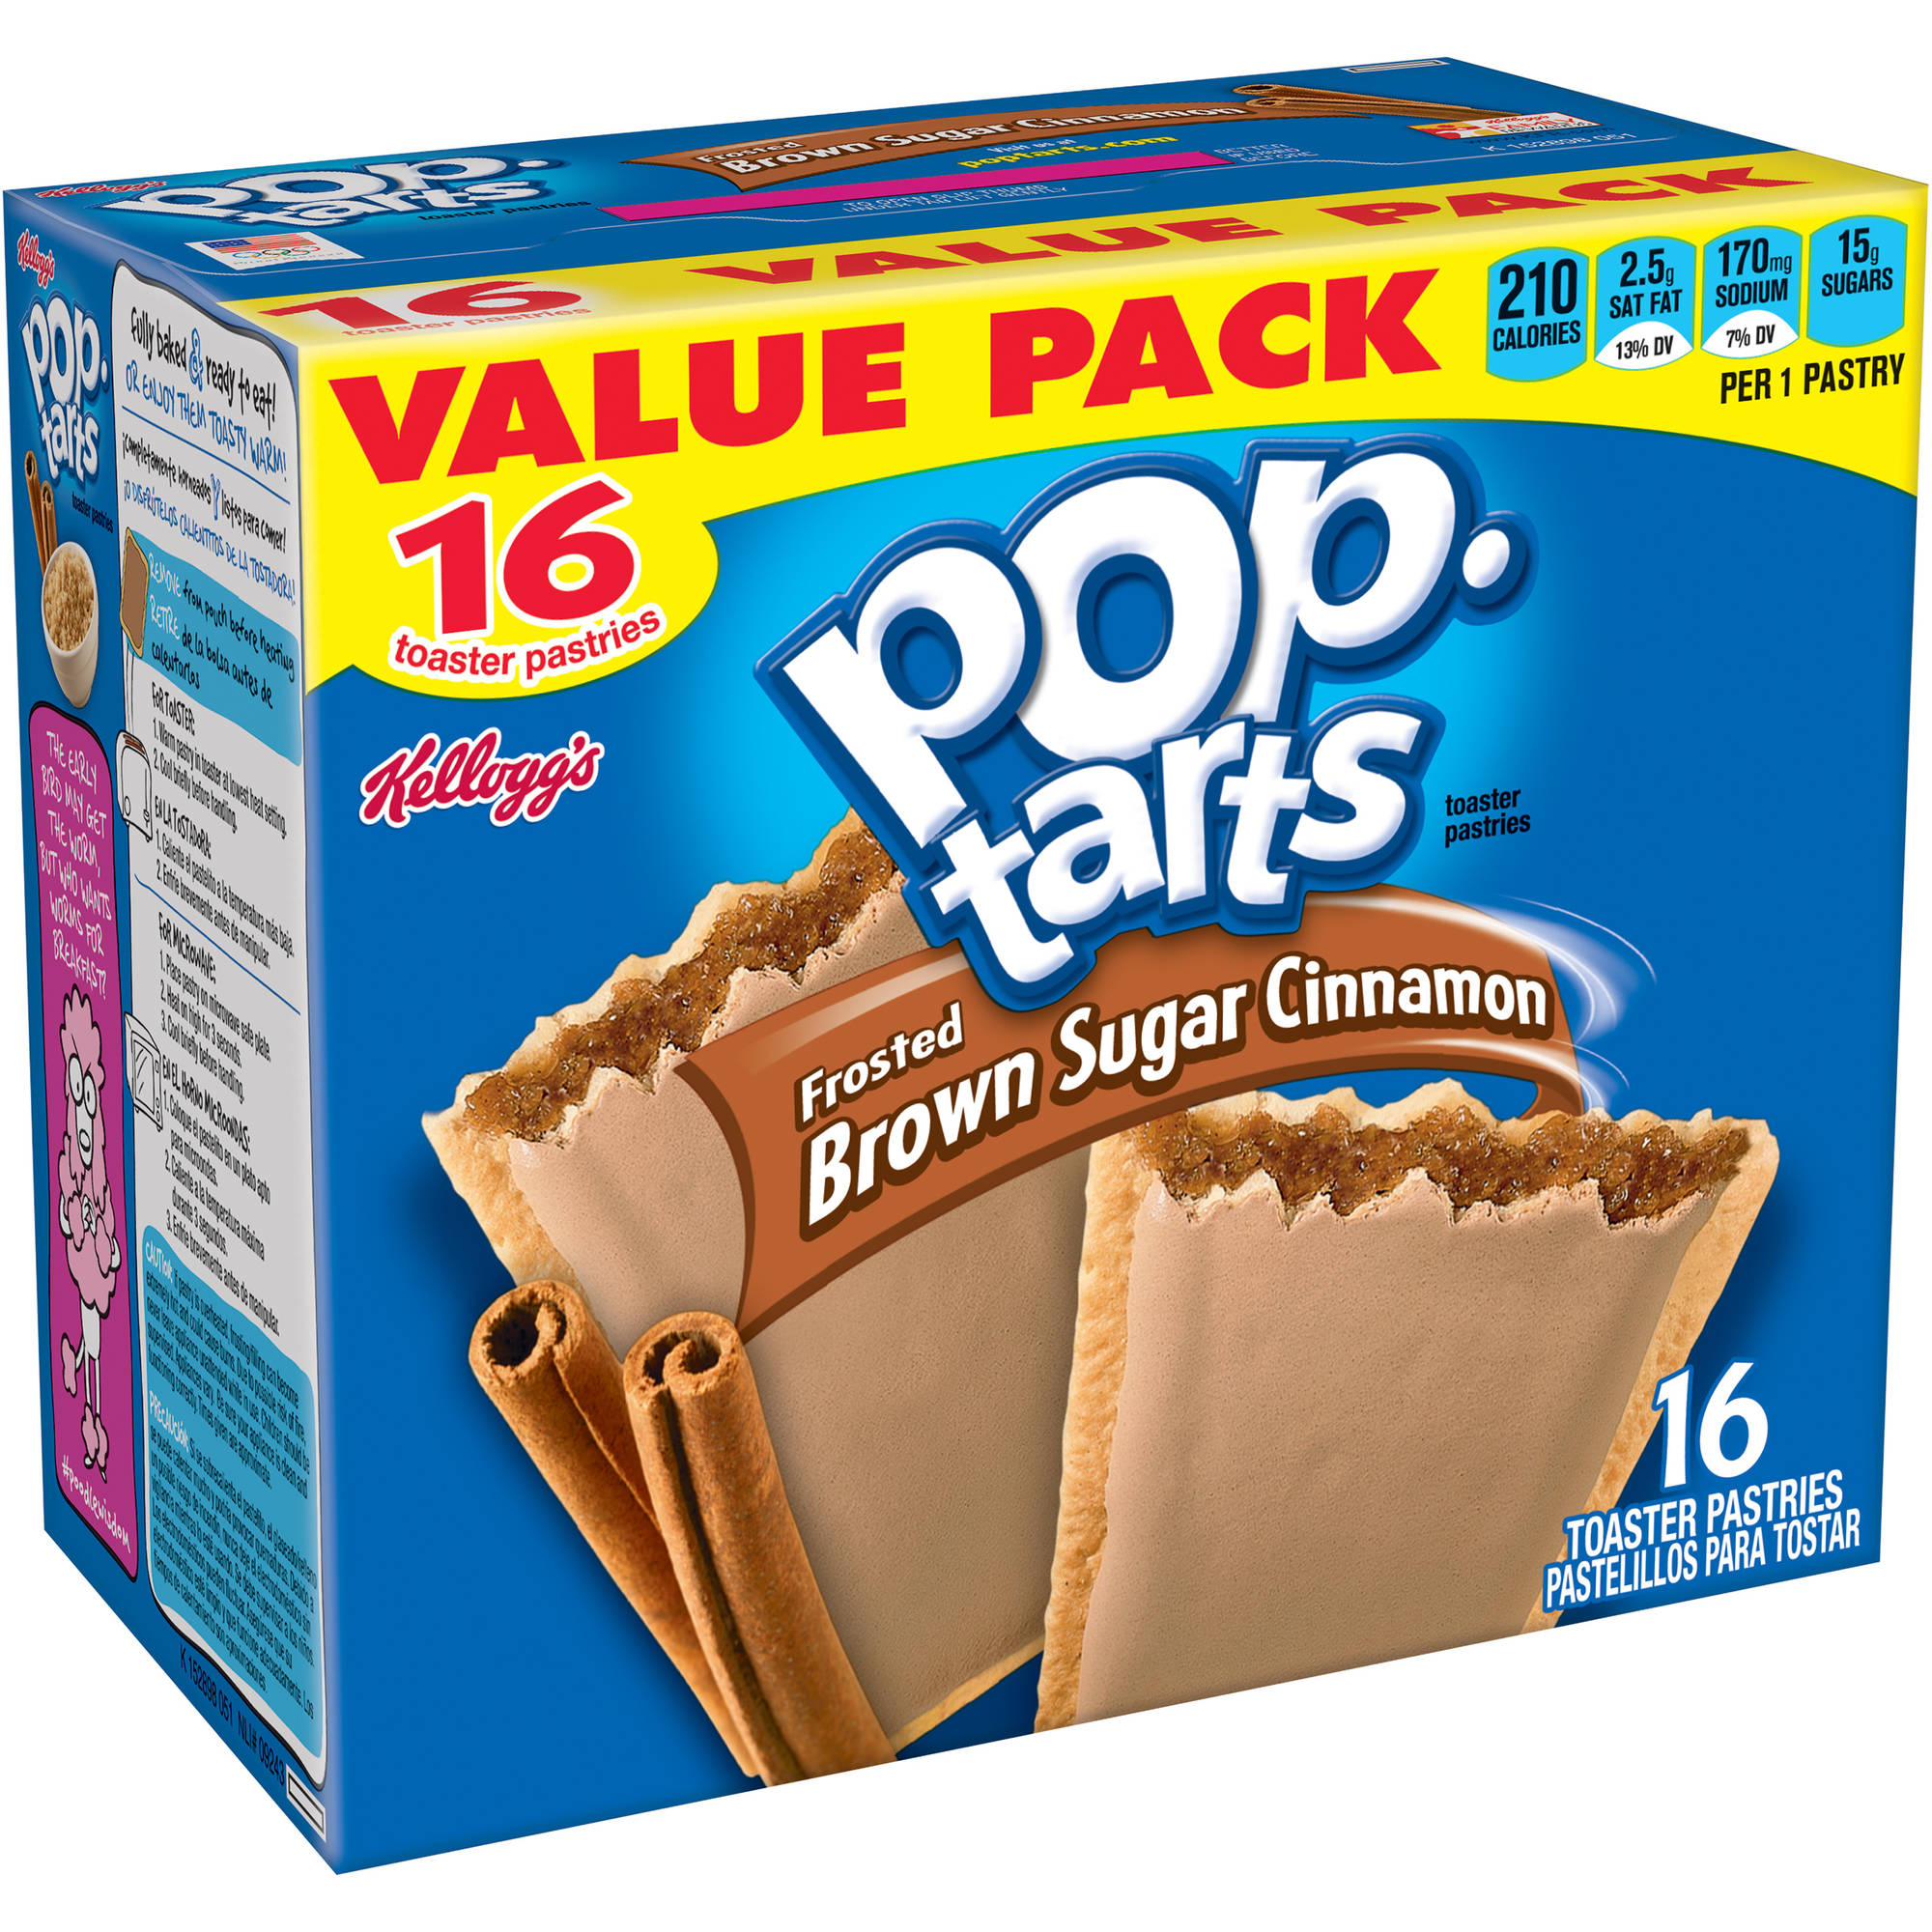 Kellogg's Brown Sugar Cinnamon Pop-Tarts, 16 ct